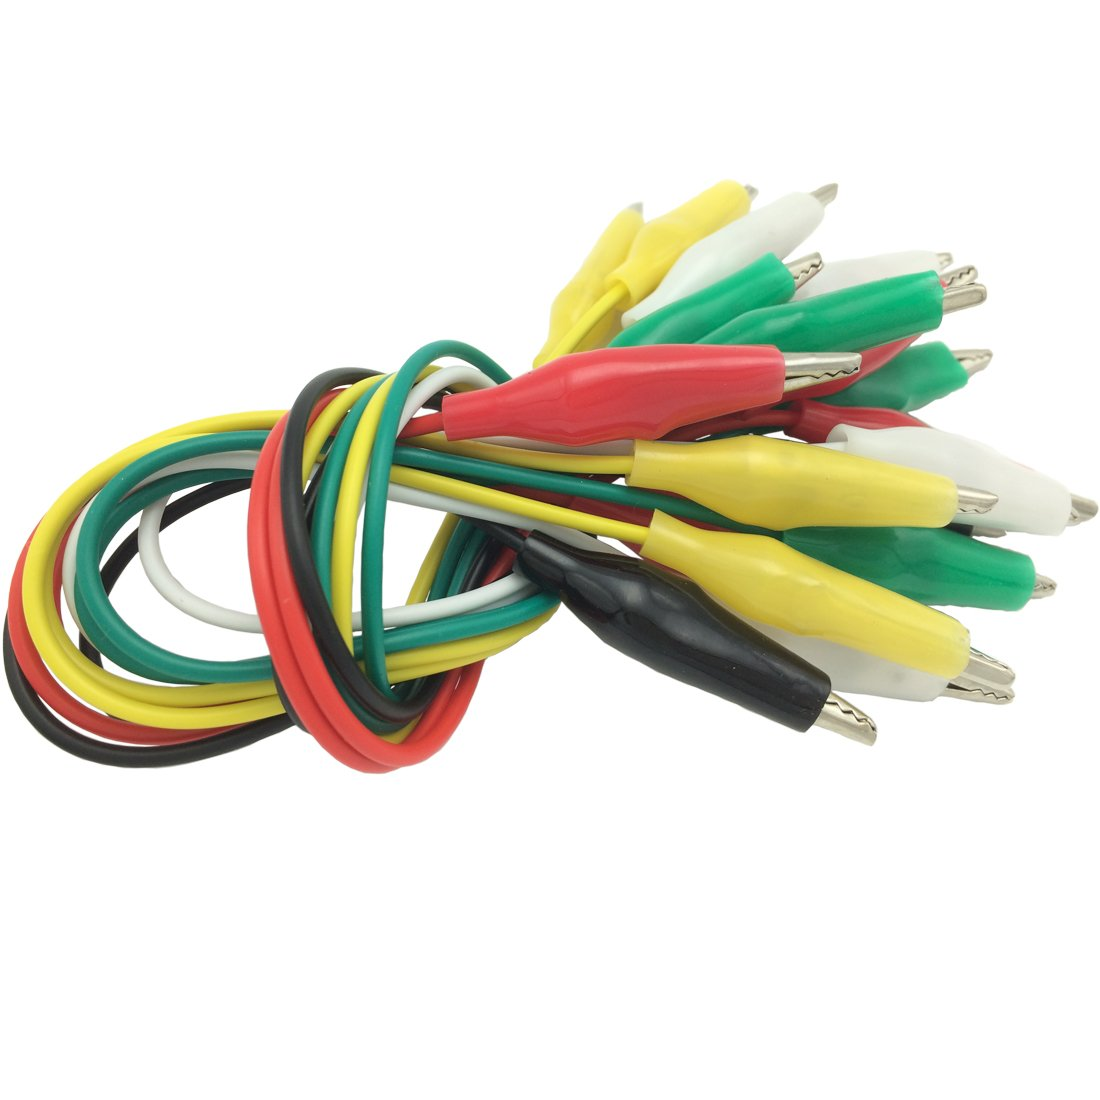 10 Pieces and 5 Colors Test Lead Set /& Alligator Clips,19.7 inches